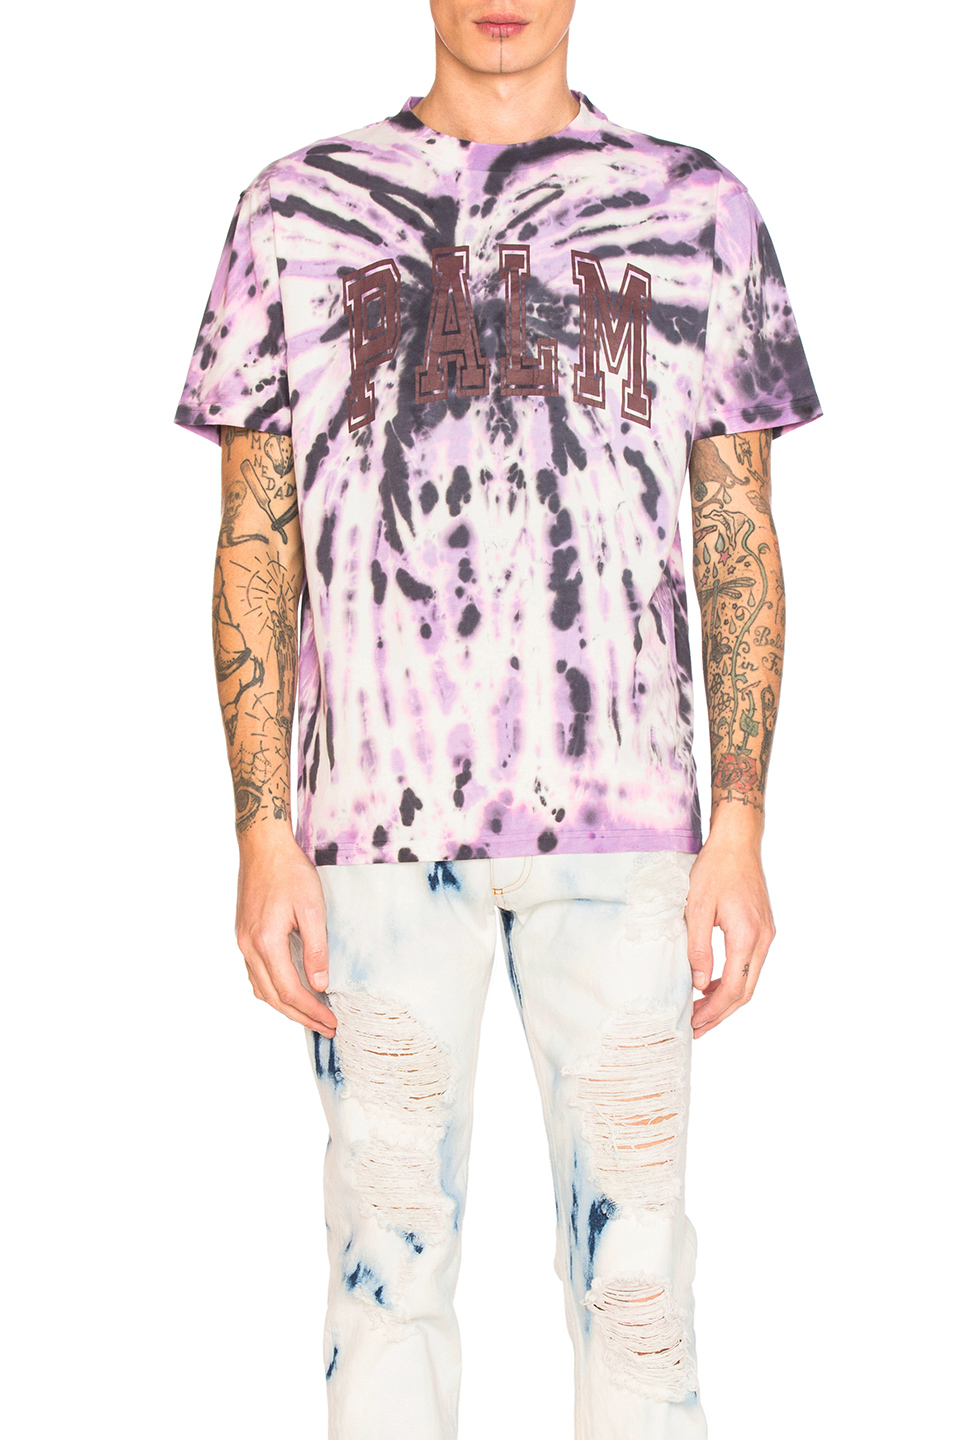 Palm Angels College Tie & Dye Tee in Purple,Ombre & Tie Dye